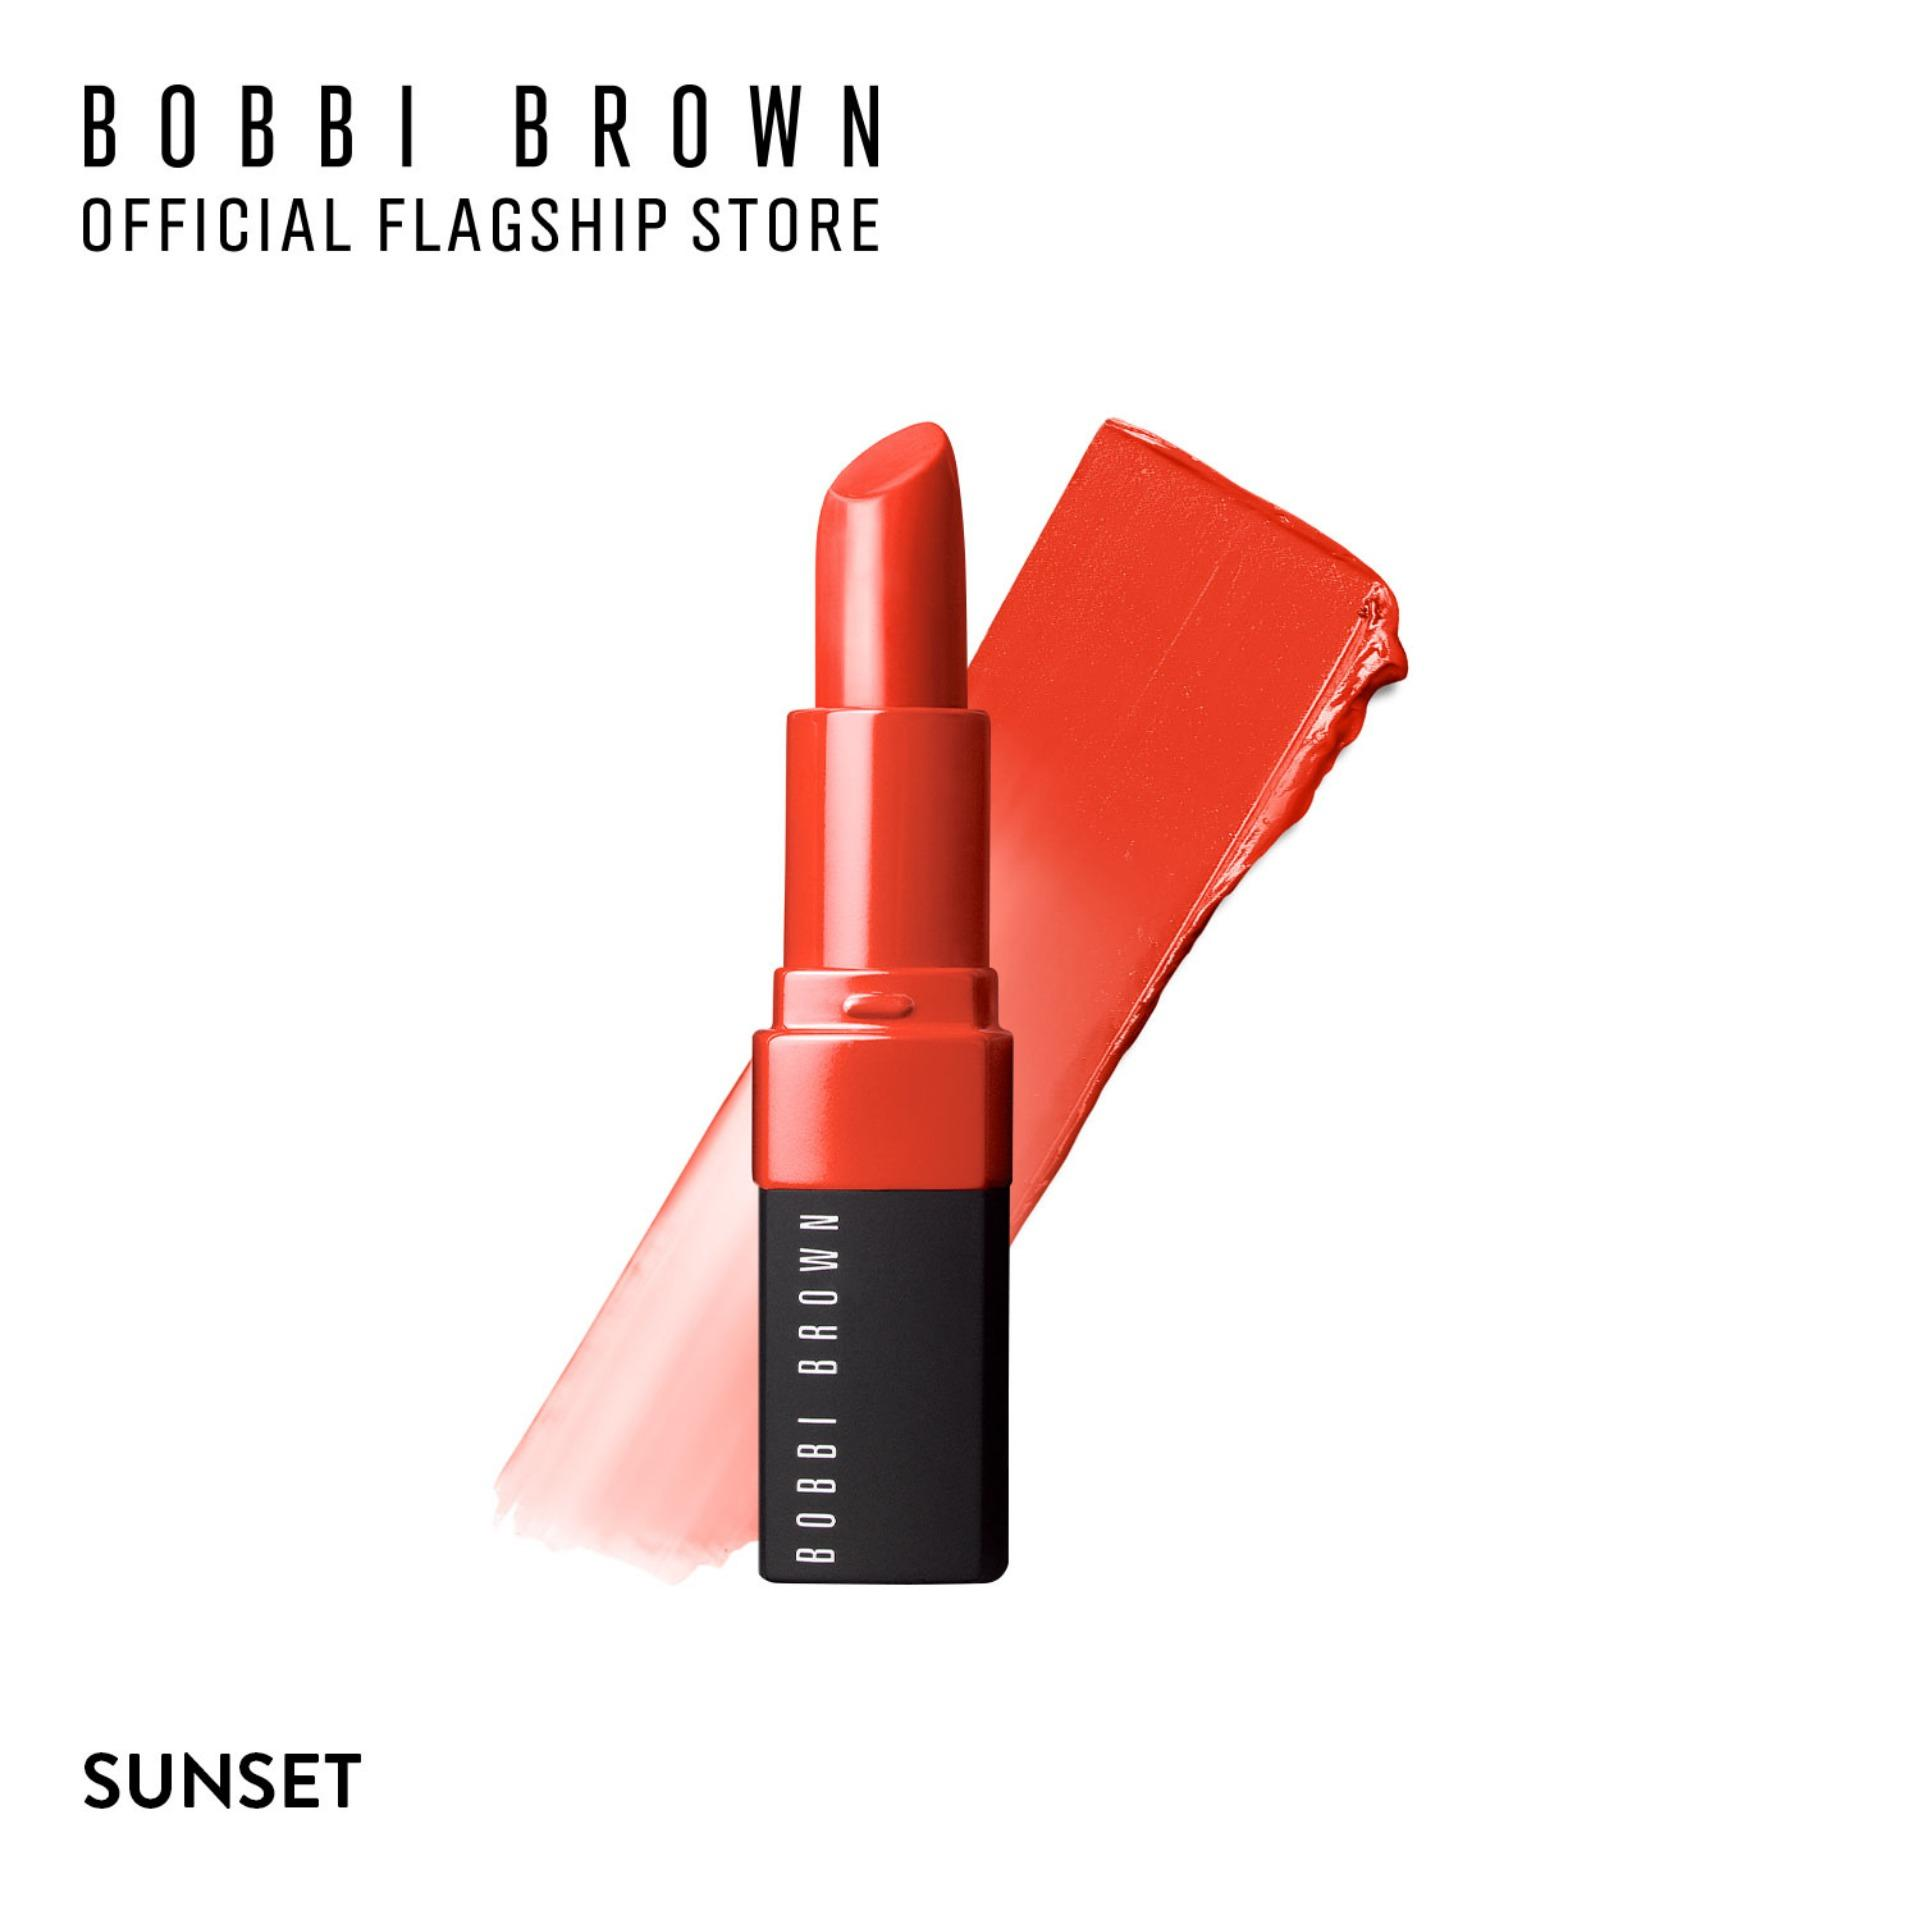 Son môi Bobbi Brown Crushed Lip Color 3.4g tốt nhất